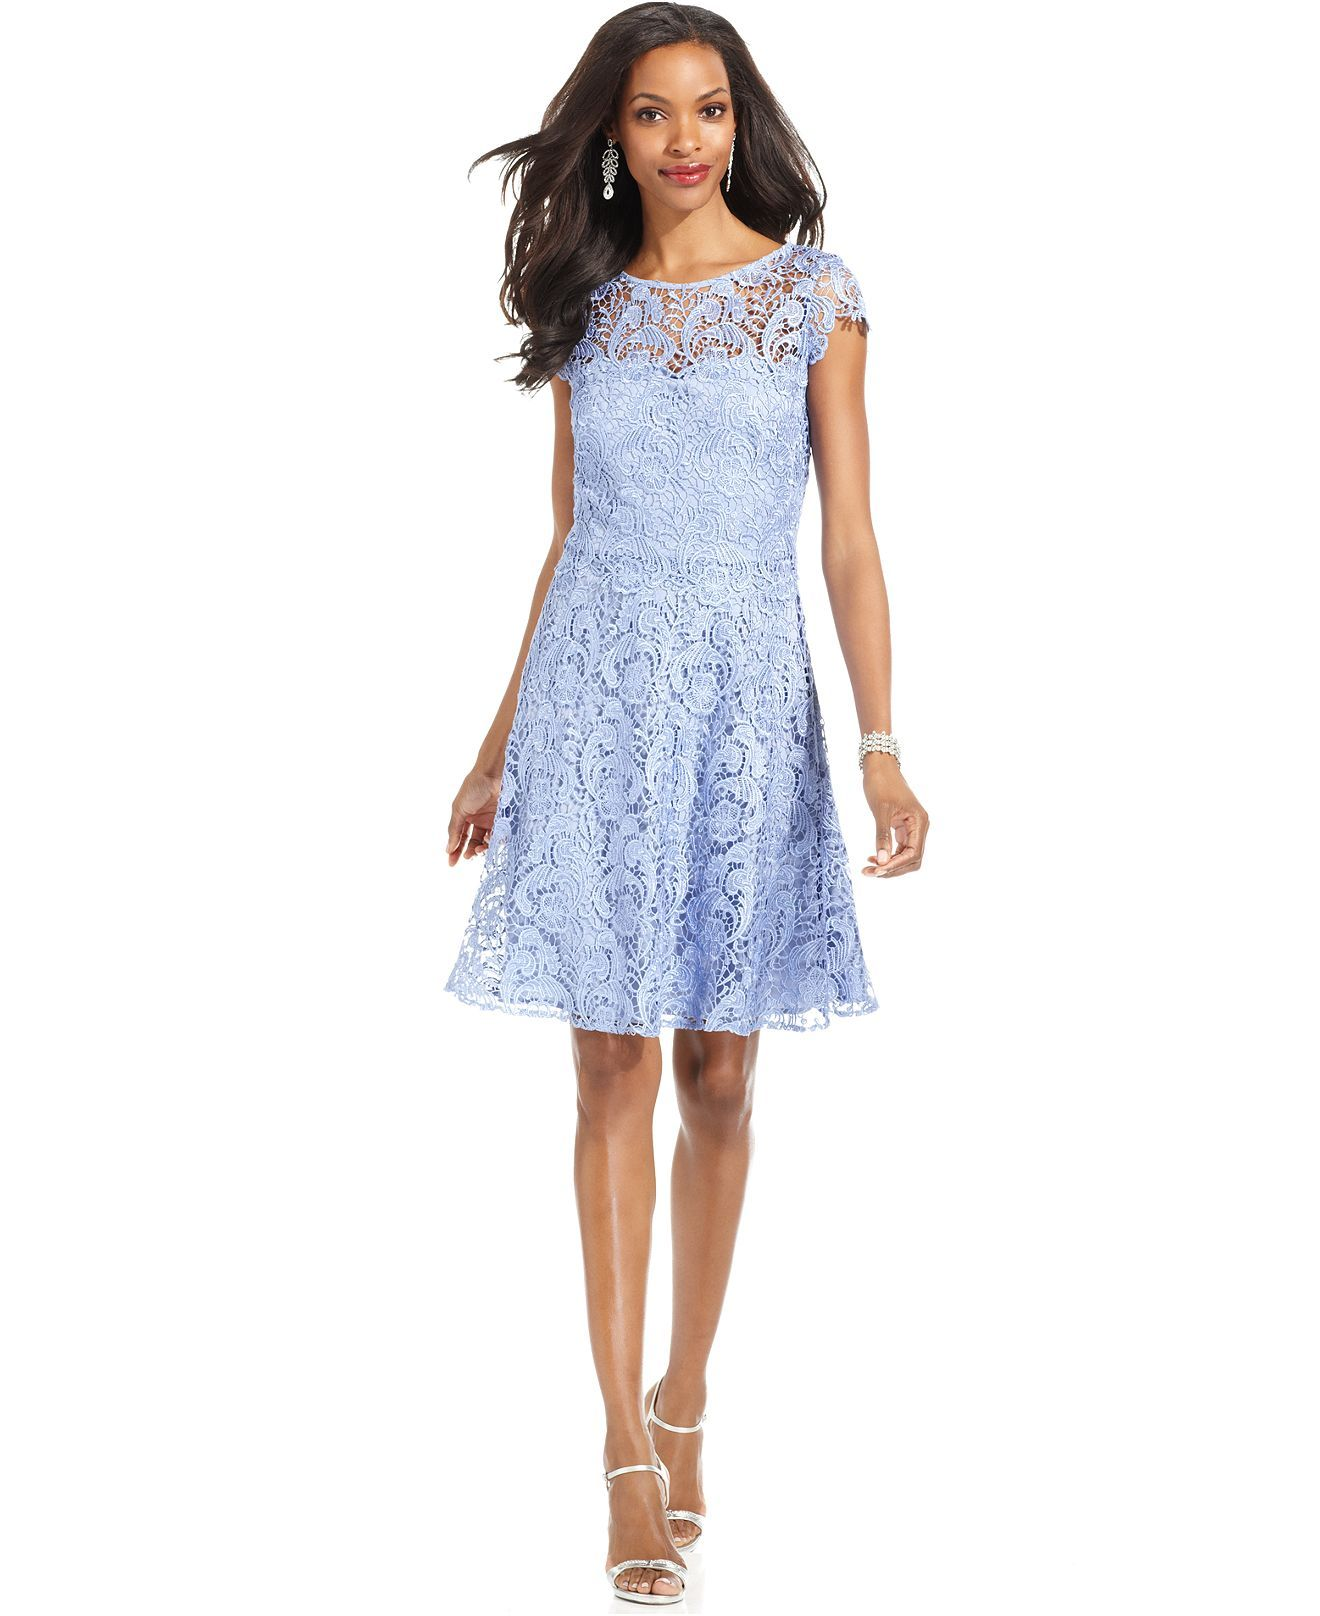 Wedding Marina Dresses marina dress sleeveless embroidered mesh lace dresses women cap sleeve a line macys